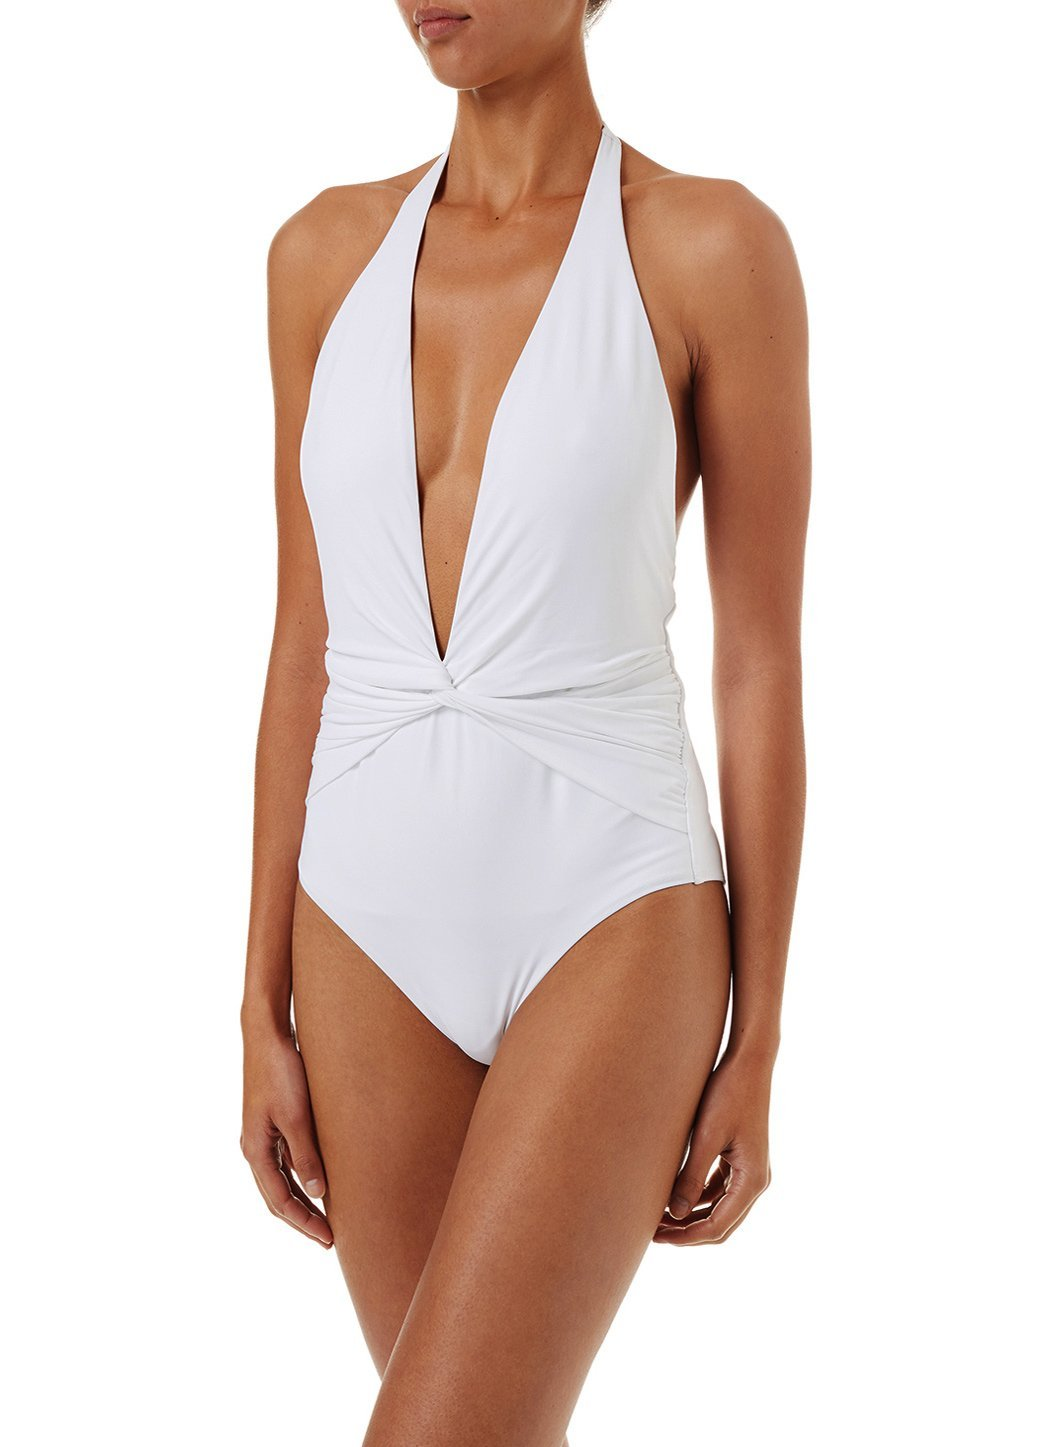 tahiti white halterneck plunge ruched onepiece swimsuit 2019 F